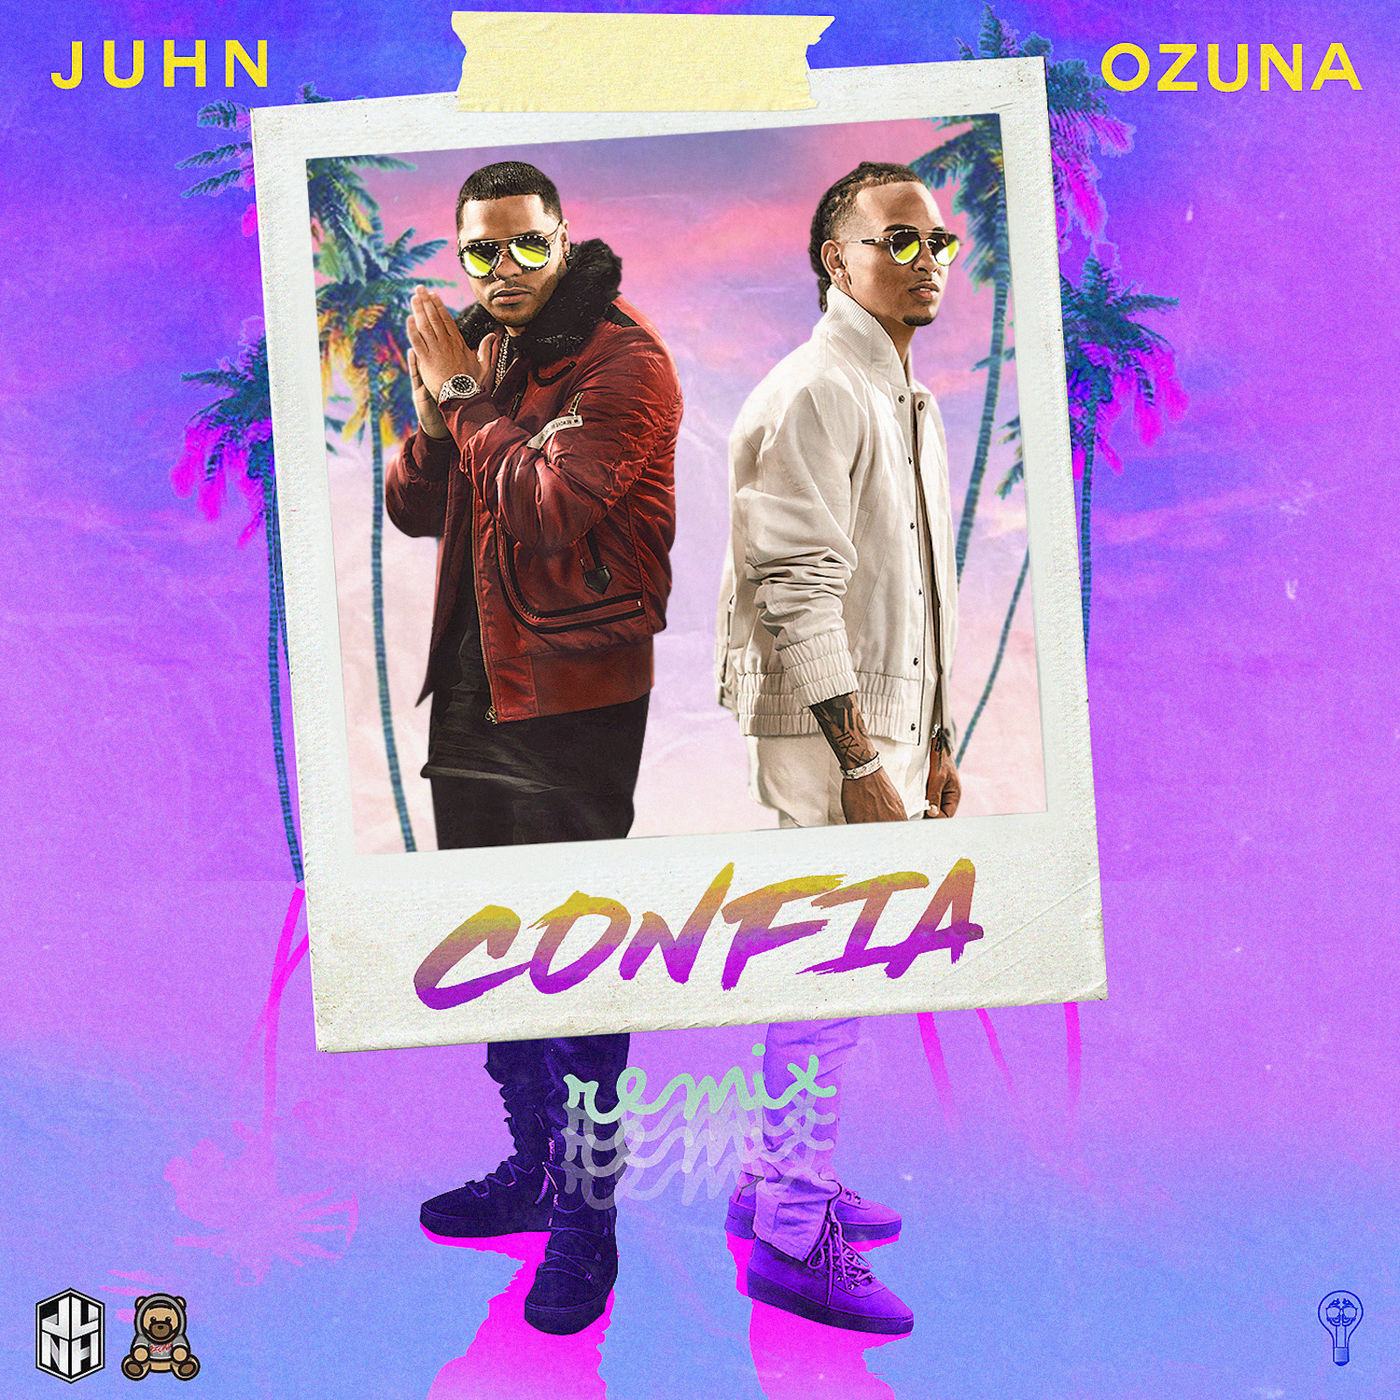 Juhn Ft. Ozuna - Confia Remix.mp3